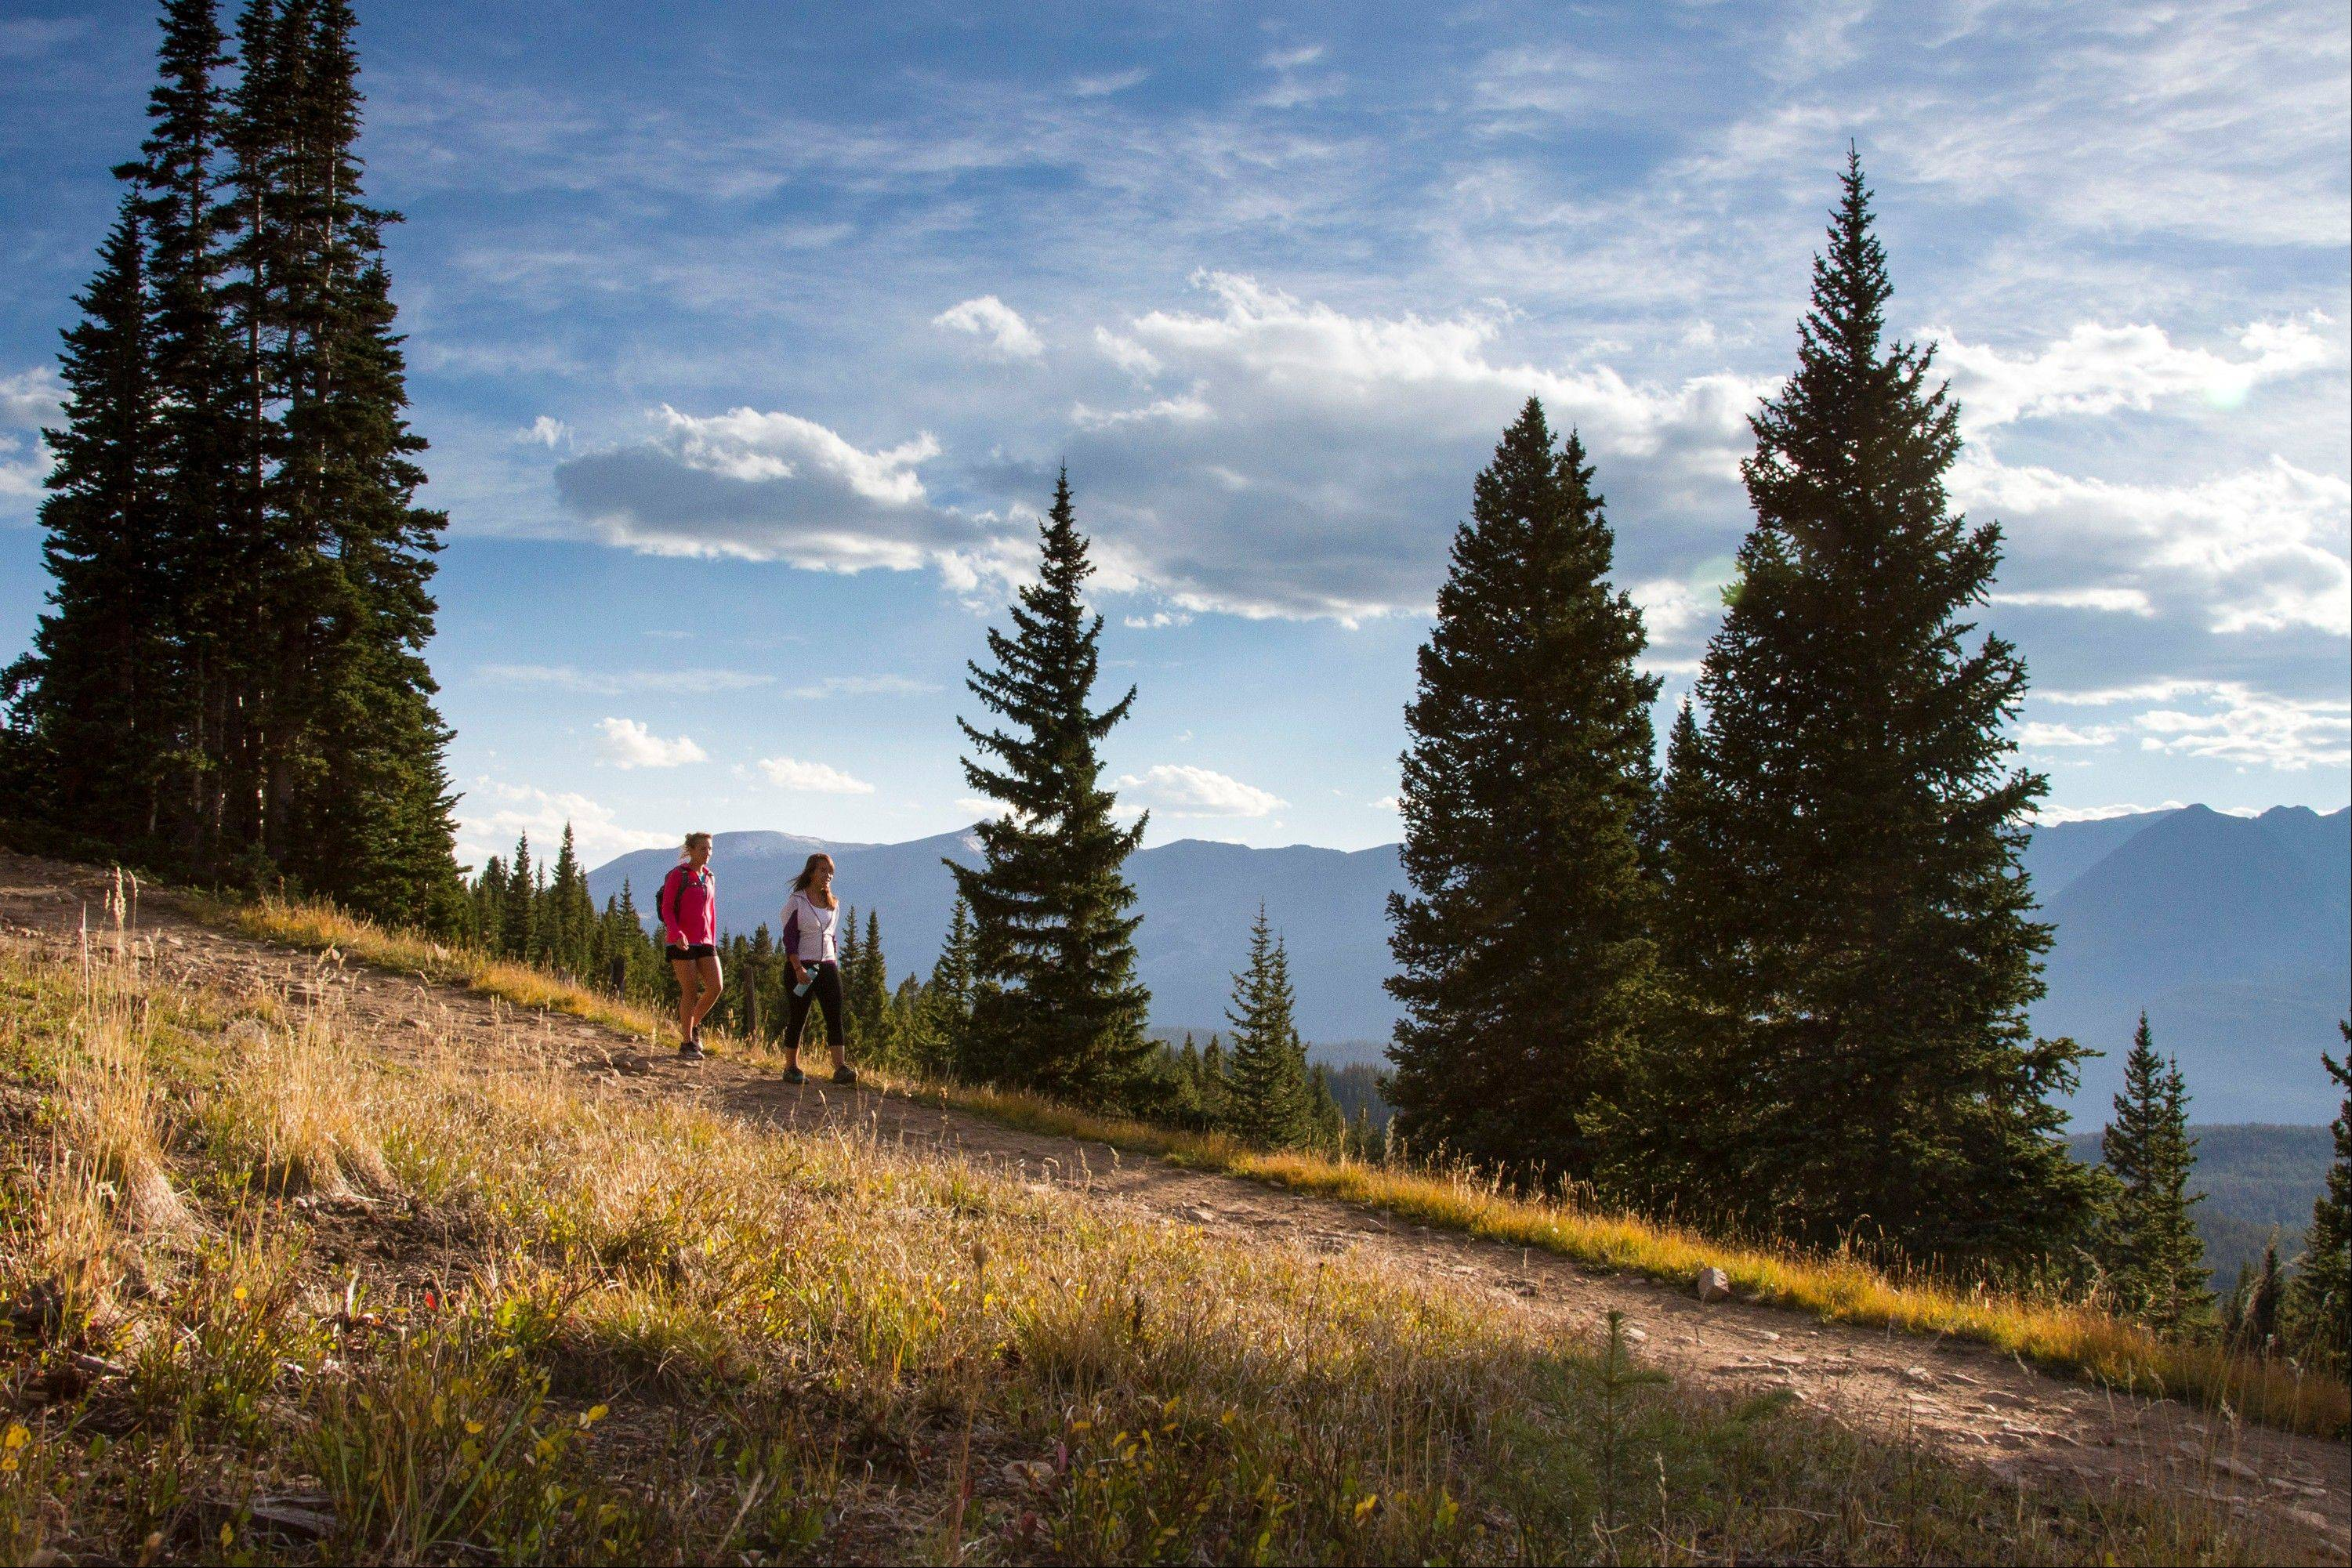 Hikers on a hilly trail in Breckenridge, Colo. Breckenridge may be best known as a ski resort, but it offers many summer and fall activities for visitors, along with offseason deals.